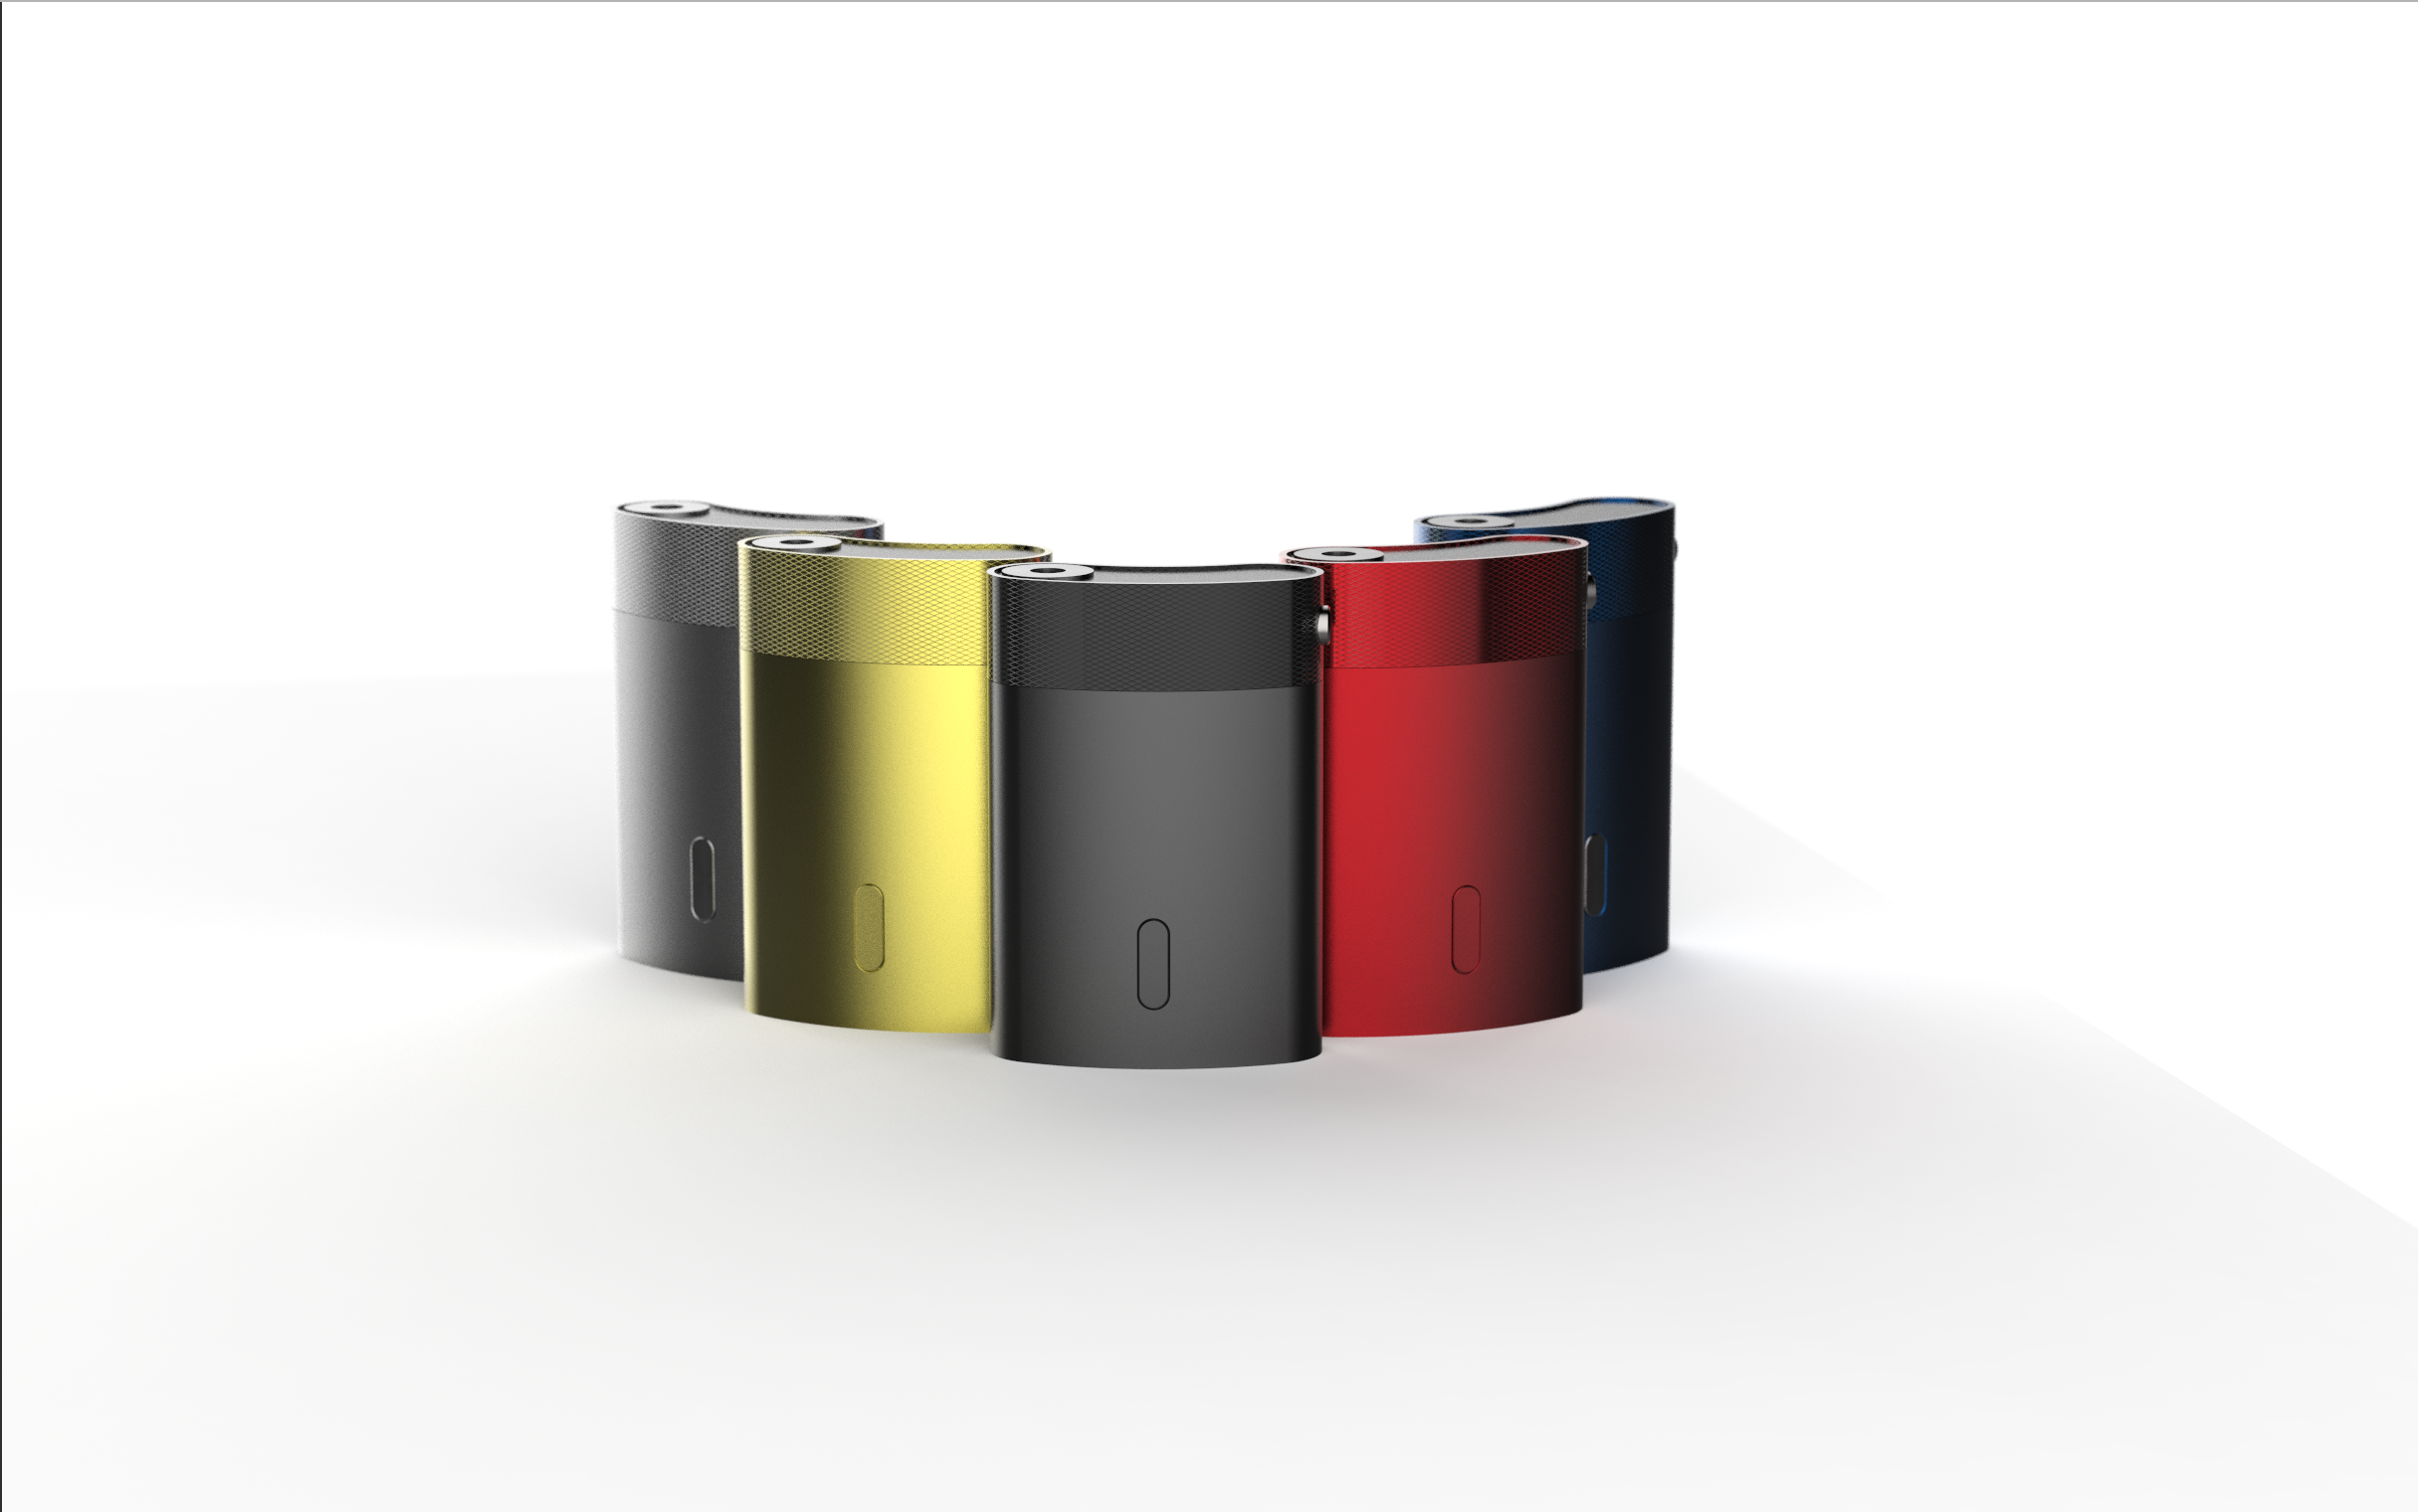 Product family of vaporizers with custom colors